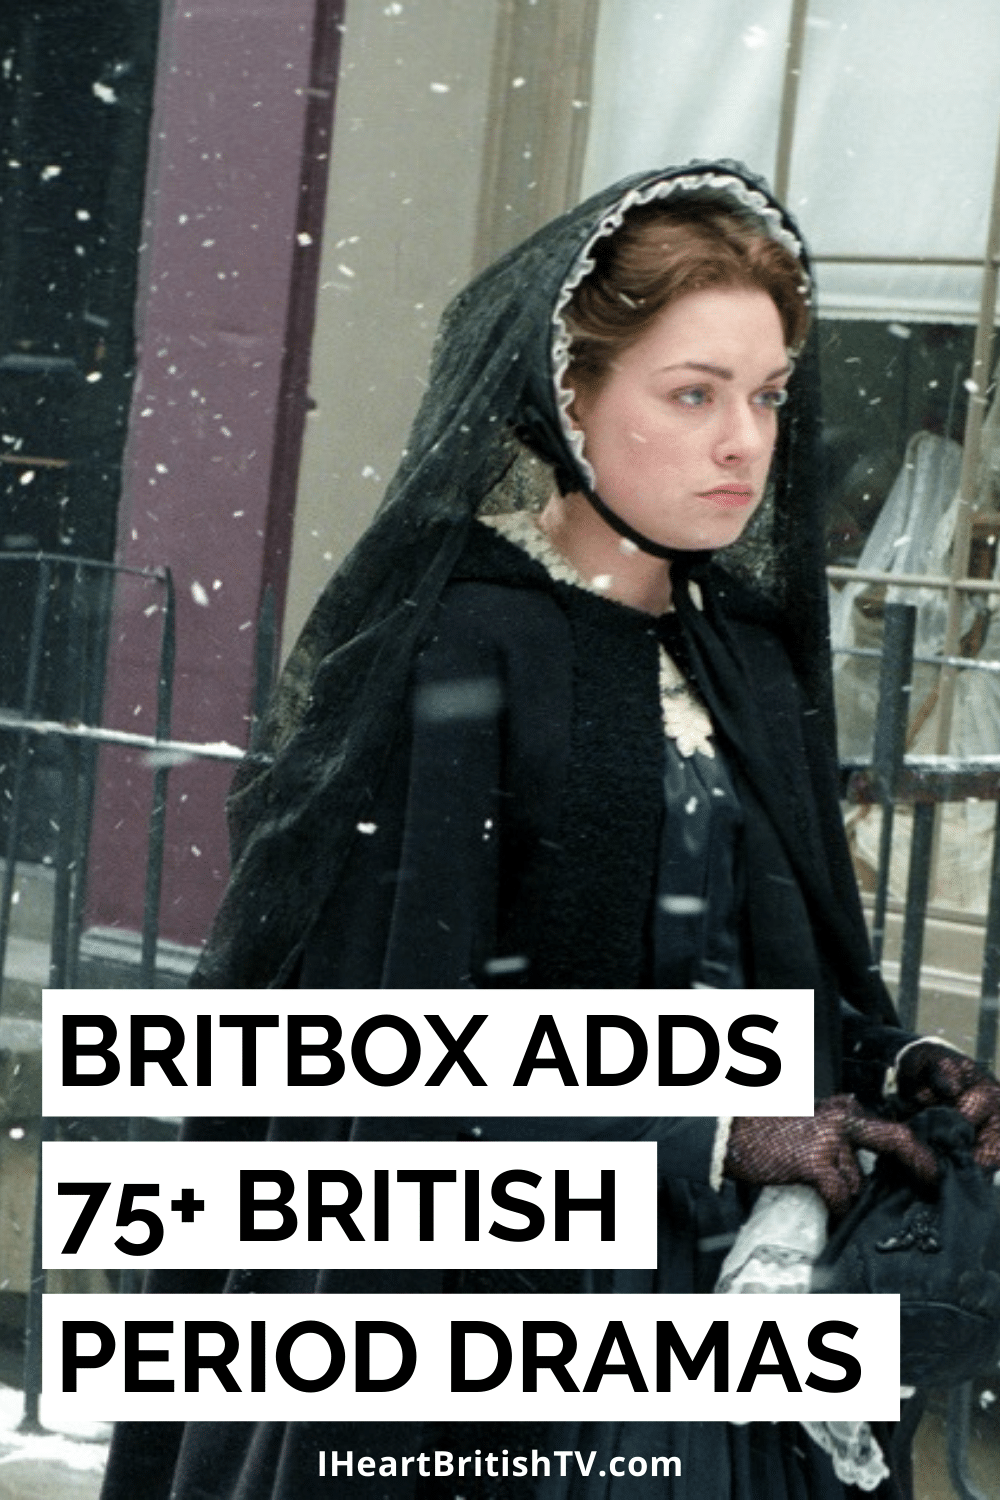 BritBox to Add 75+ British Period Dramas in December 2020 14